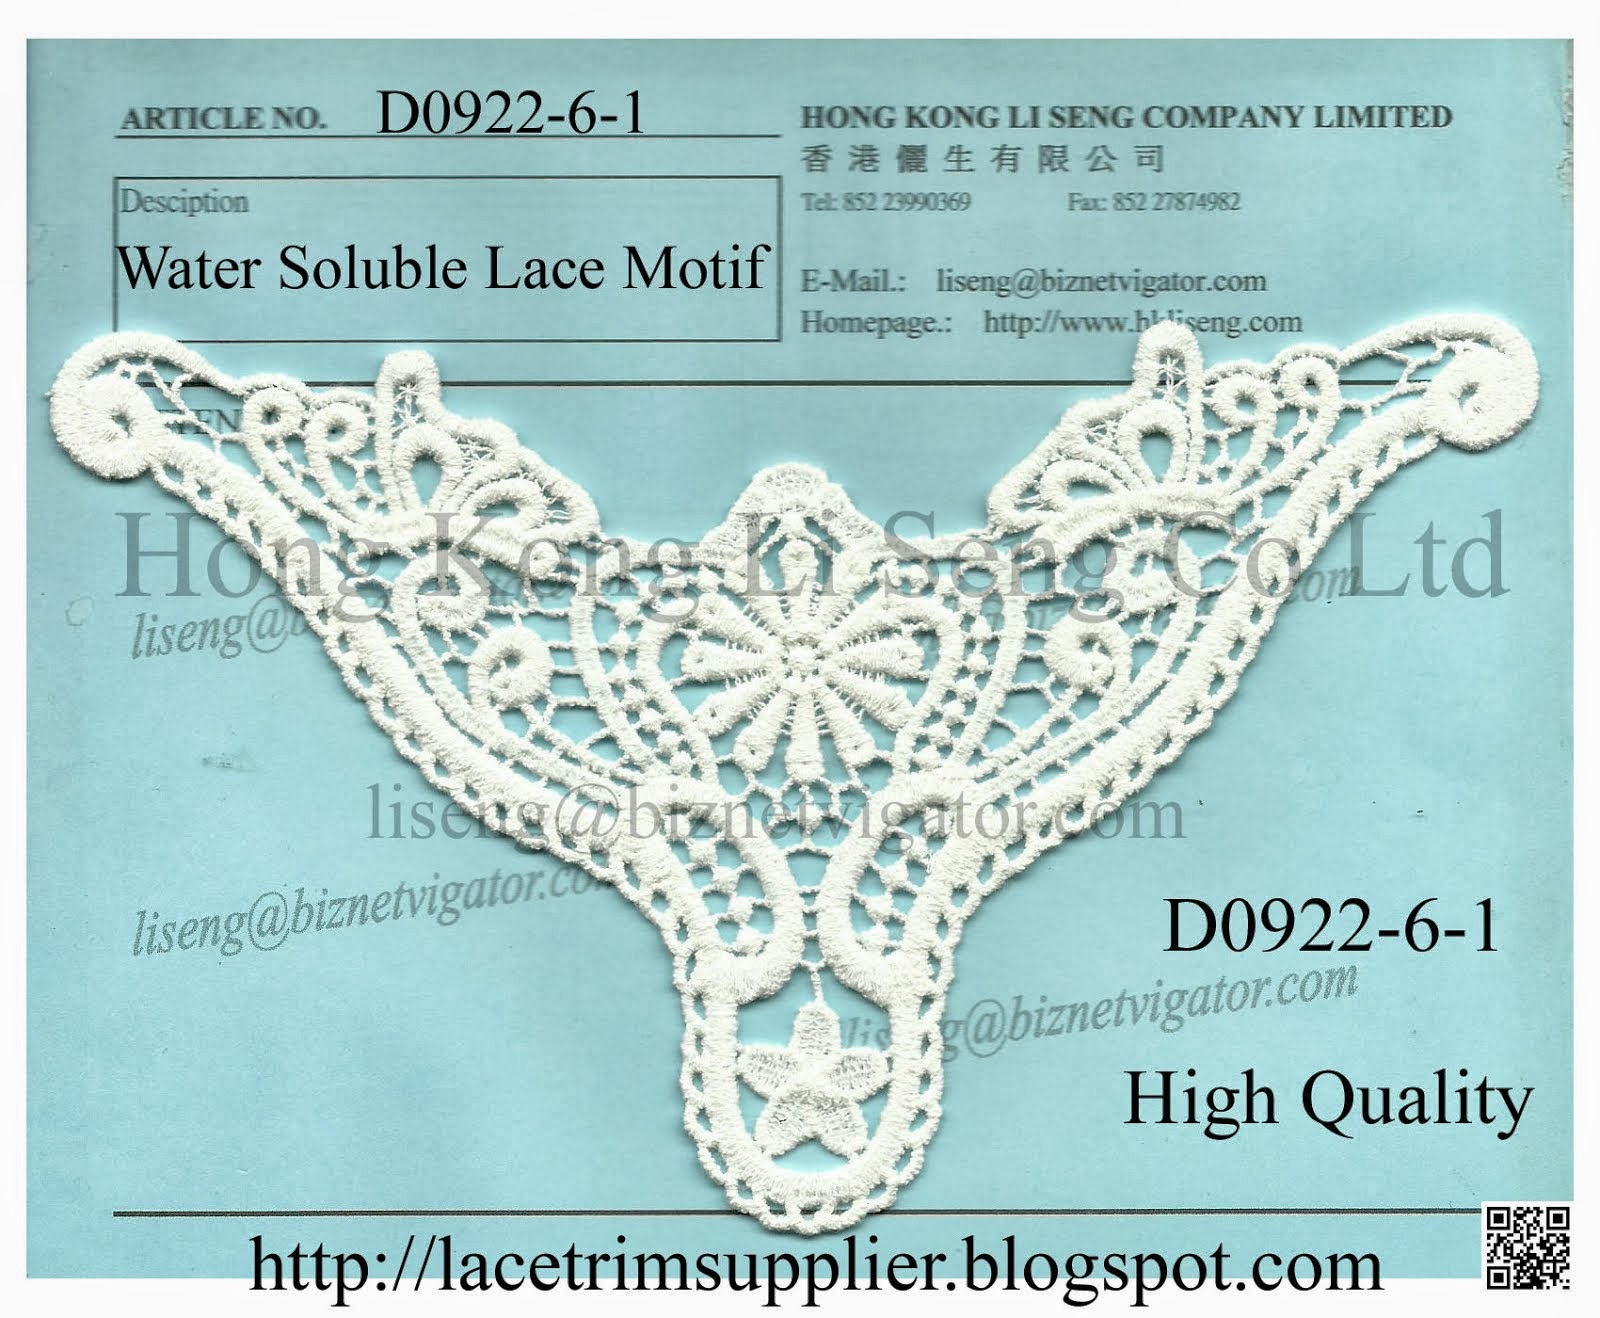 High Quality Lace Motif Manufacturer Wholesale and Supplier - Hong Kong Li Seng Co Ltd